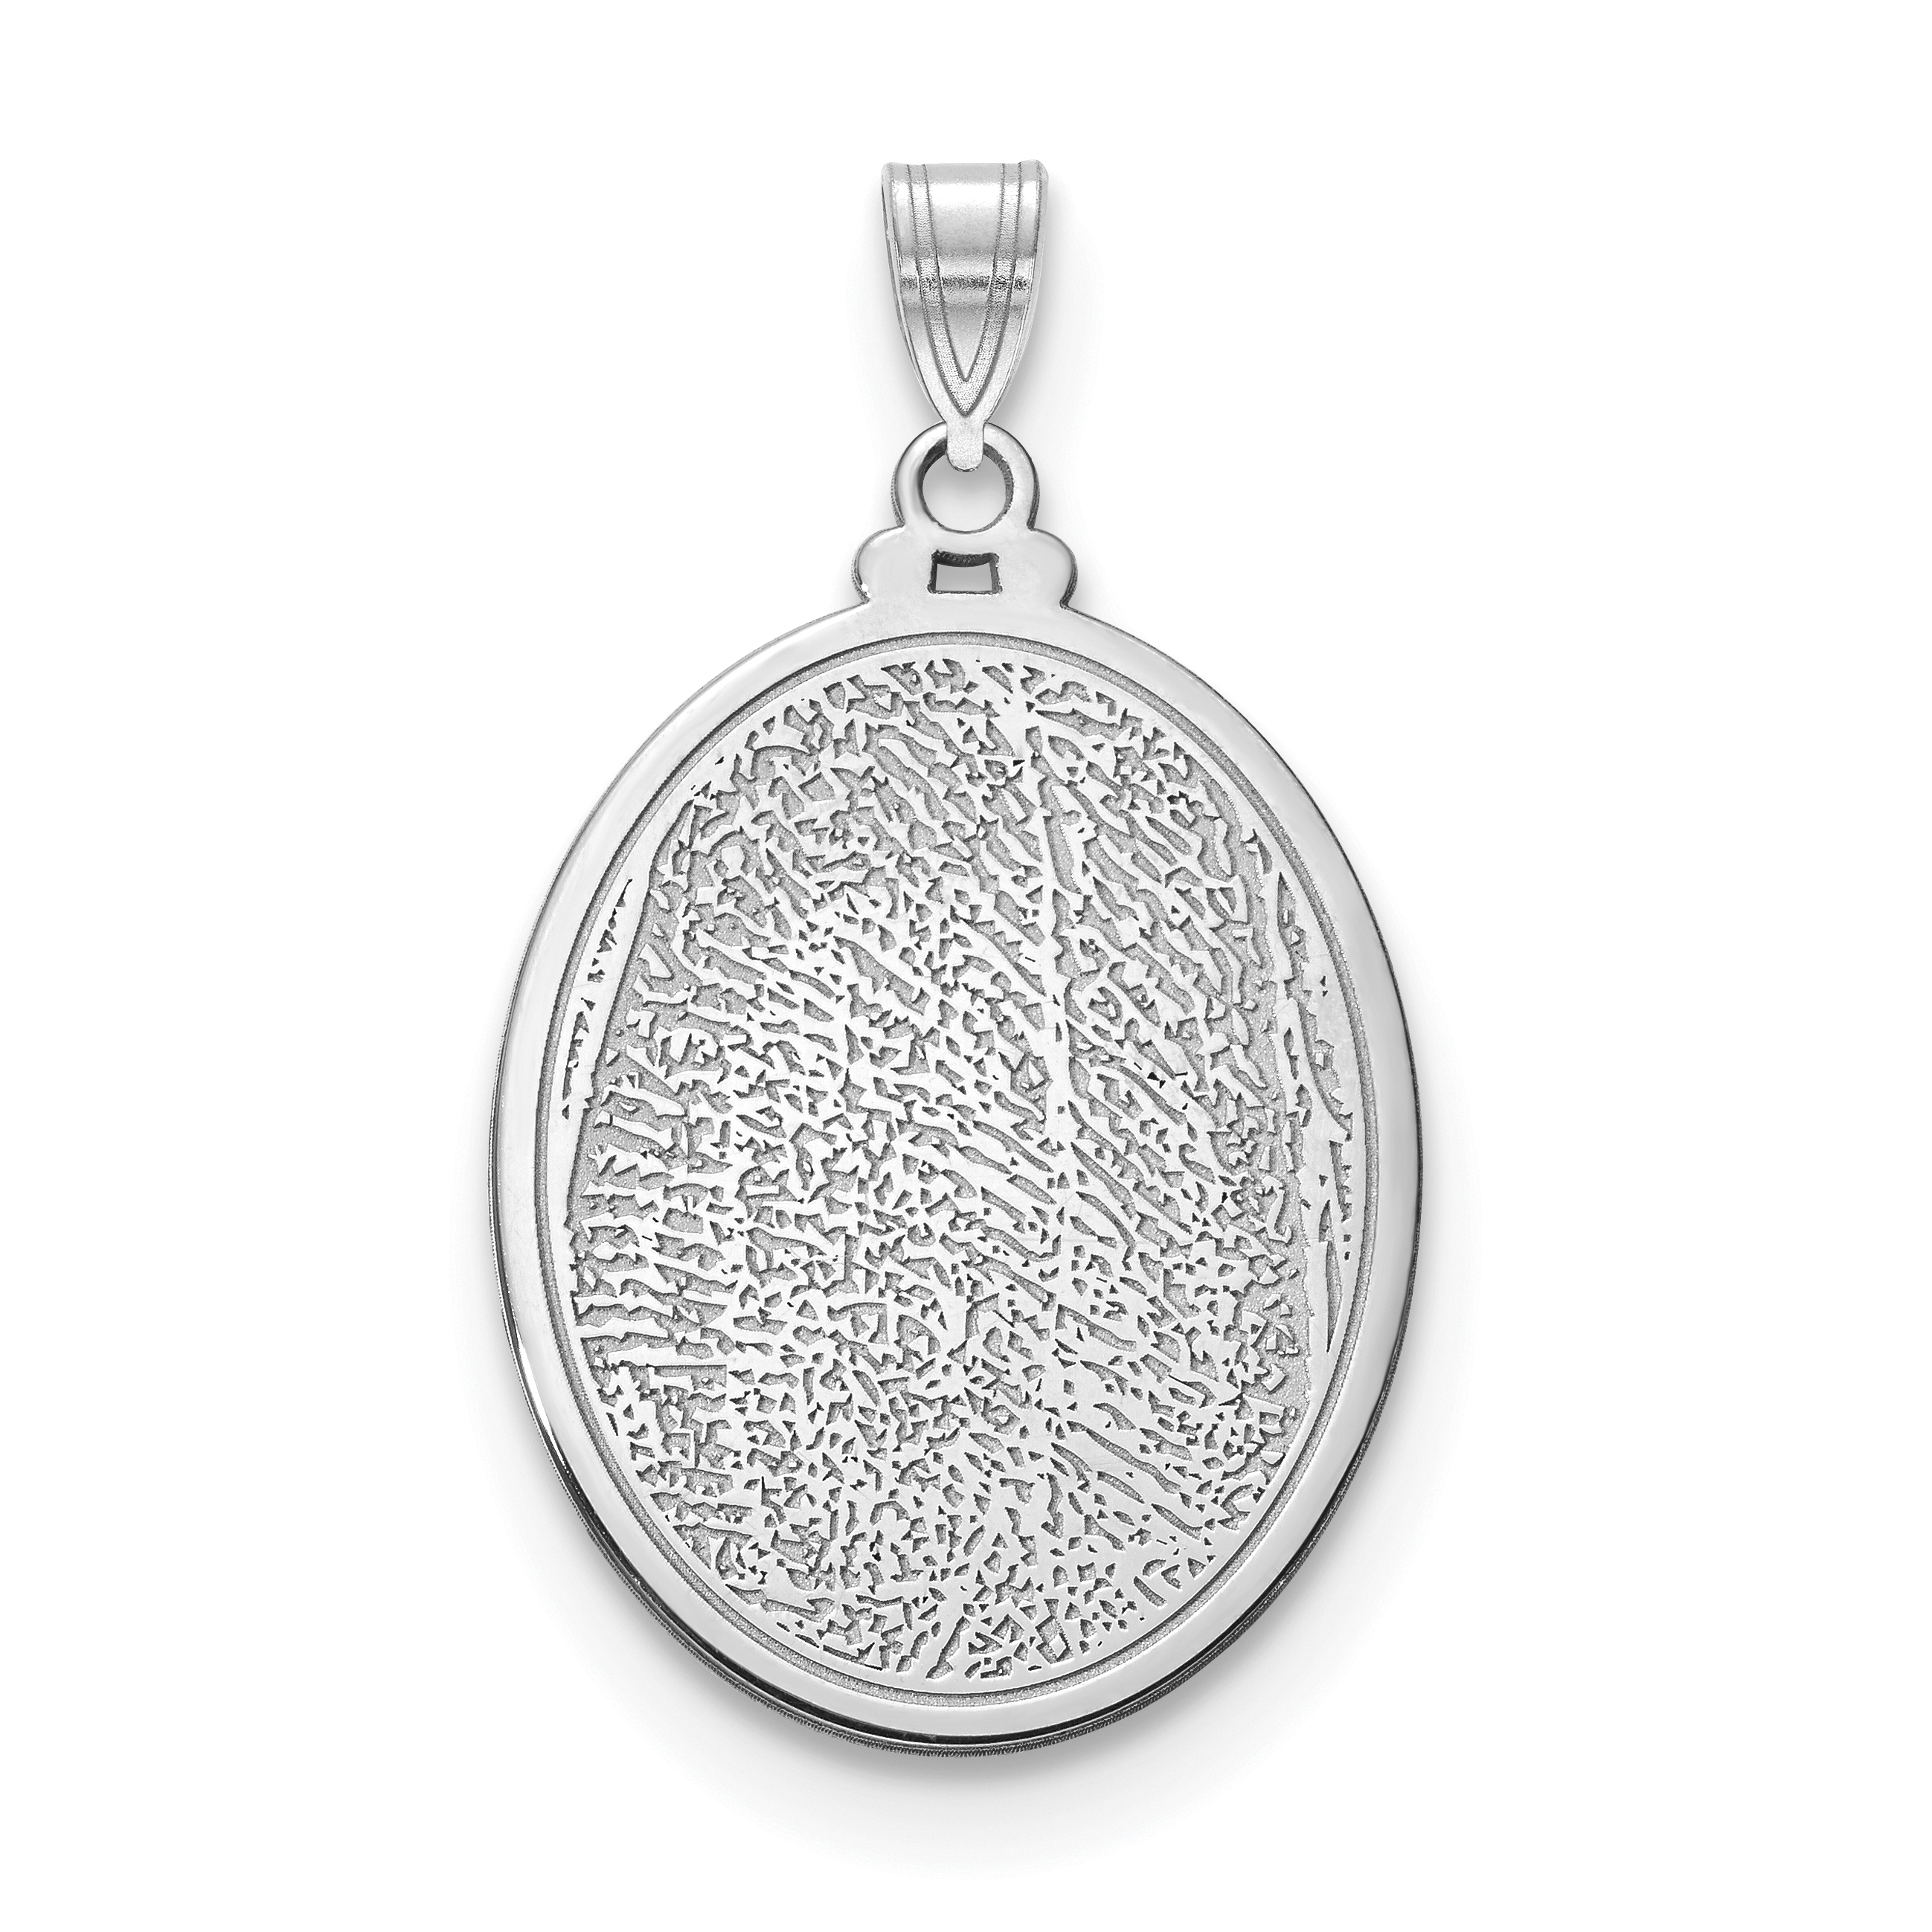 Rnd Polish Front//Satin Back Disc Pendant Charm 16mm x 23mm Jewel Tie Sterling Silver Rhod-plated Eng